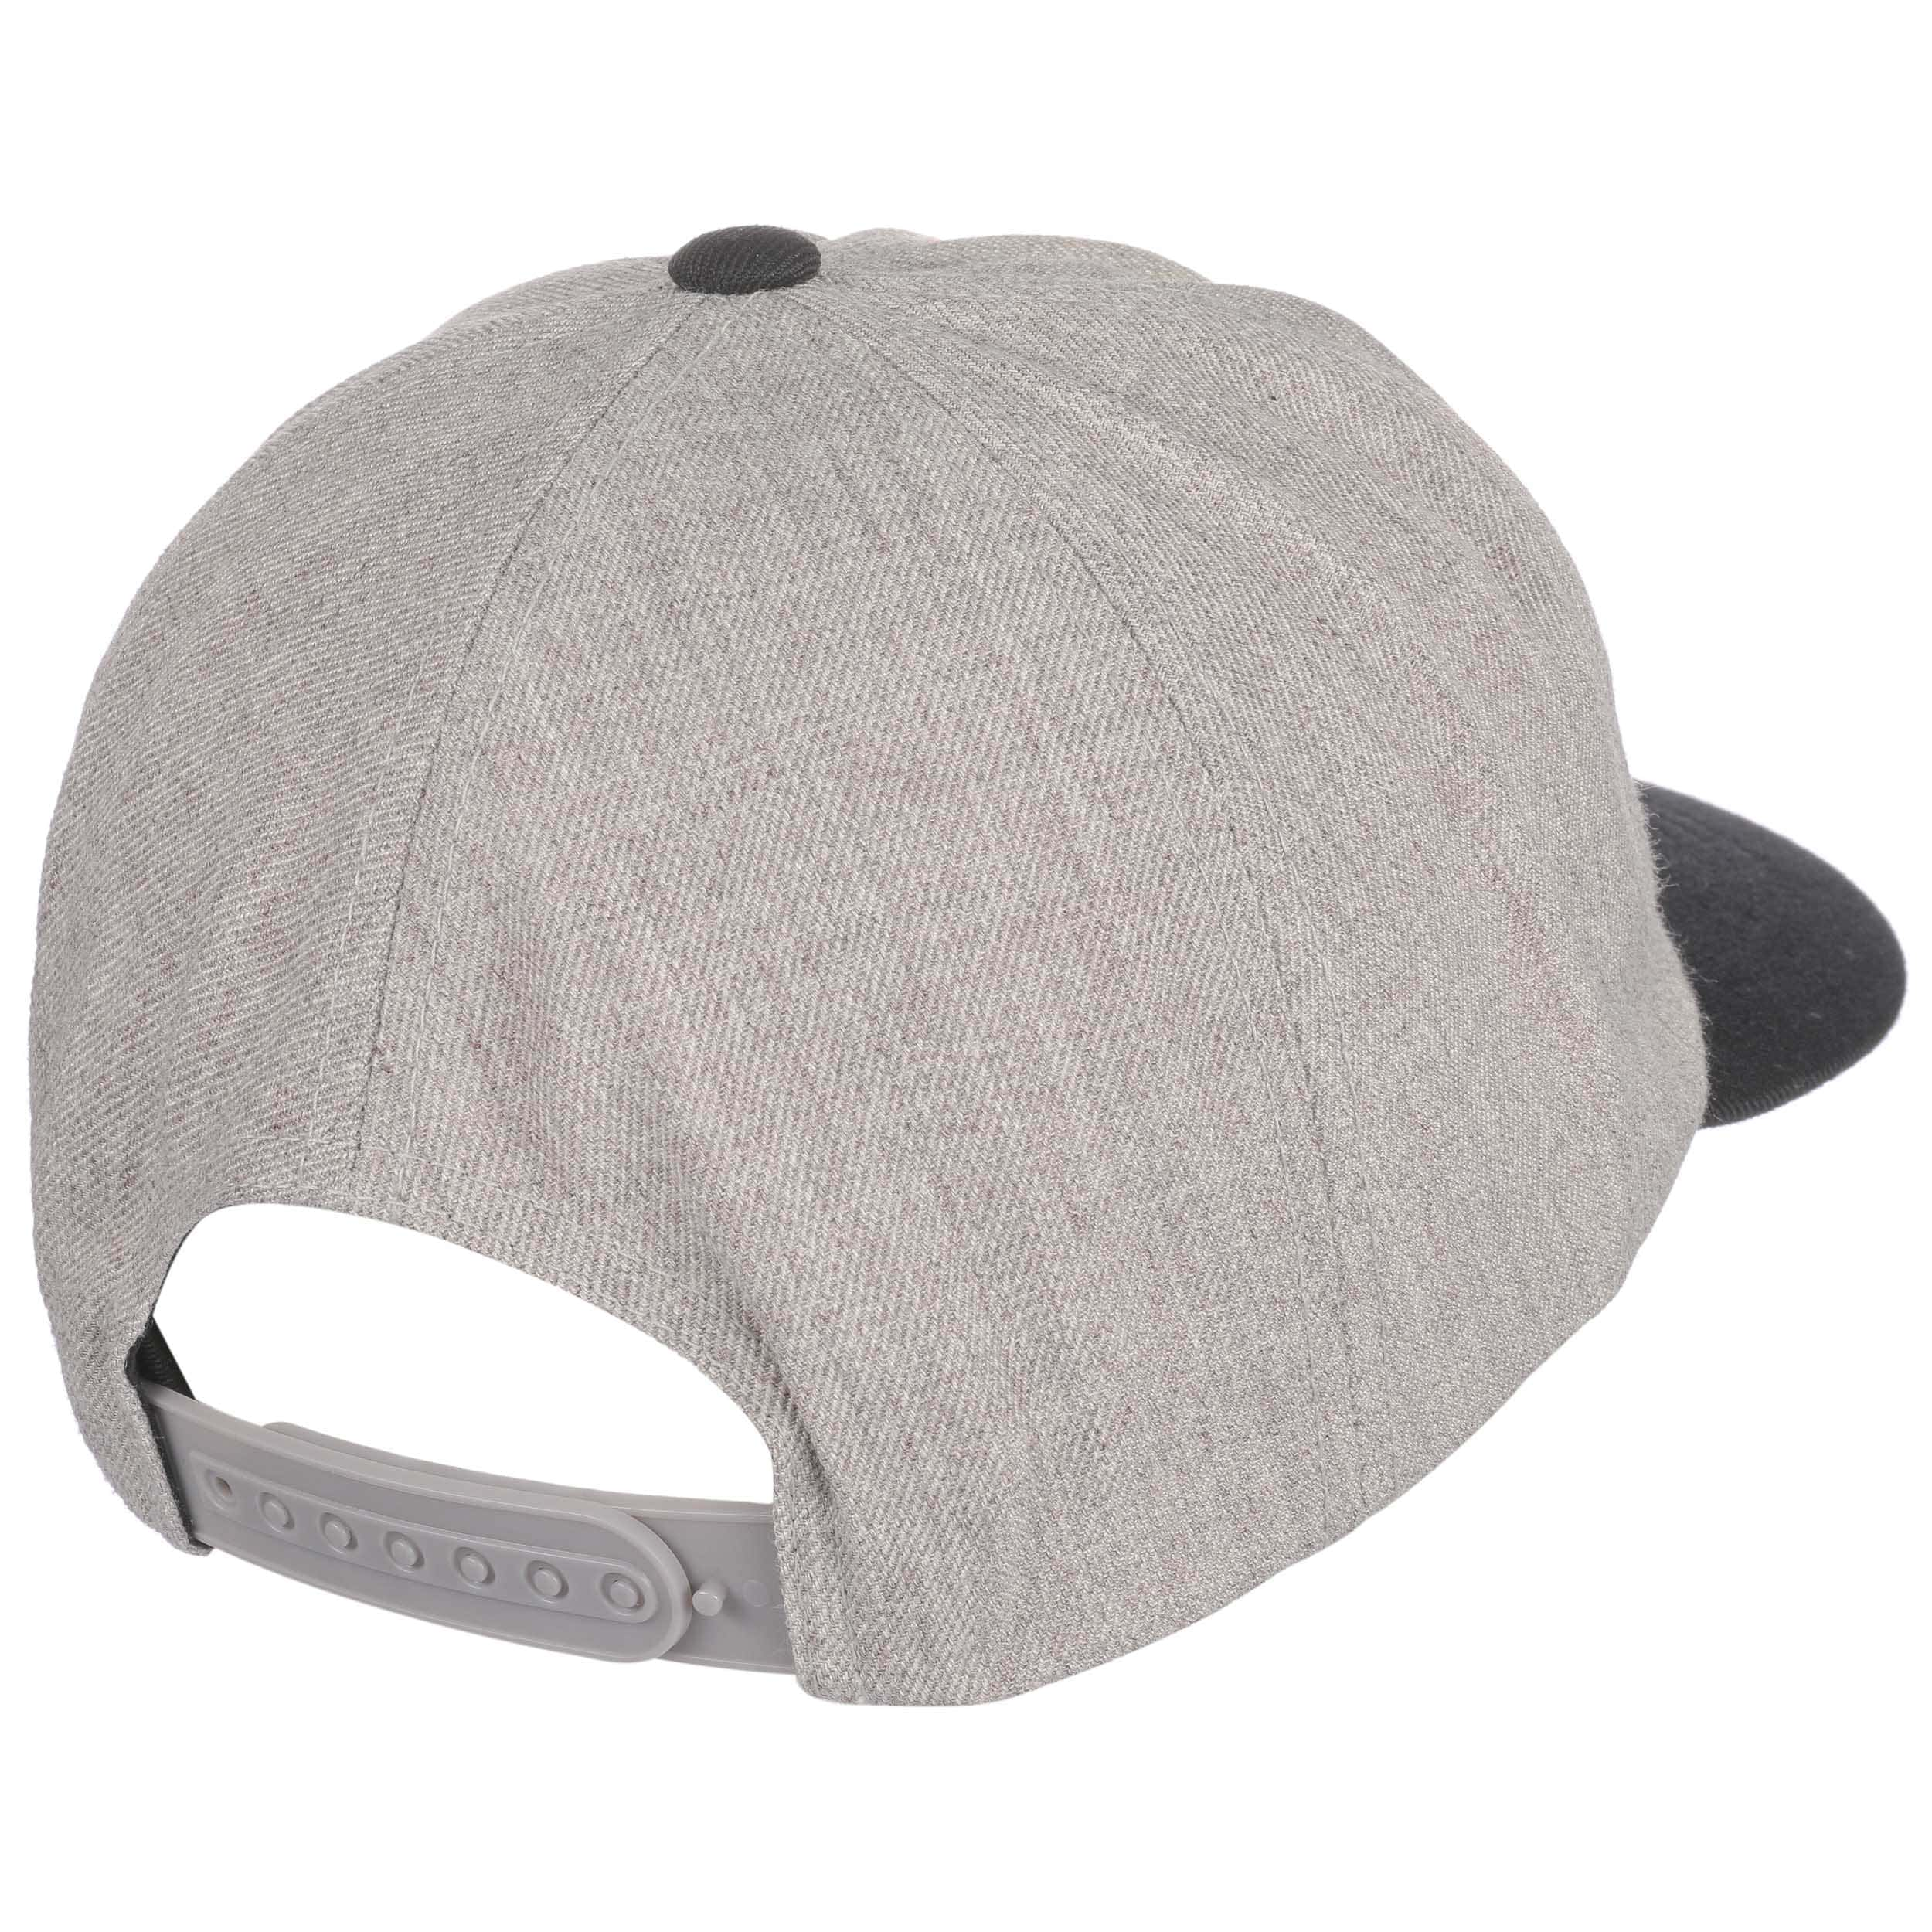 buy popular aa965 d9cb6 ... free shipping louisville snapback cap by brixton light grey 3 42d95  d7fab